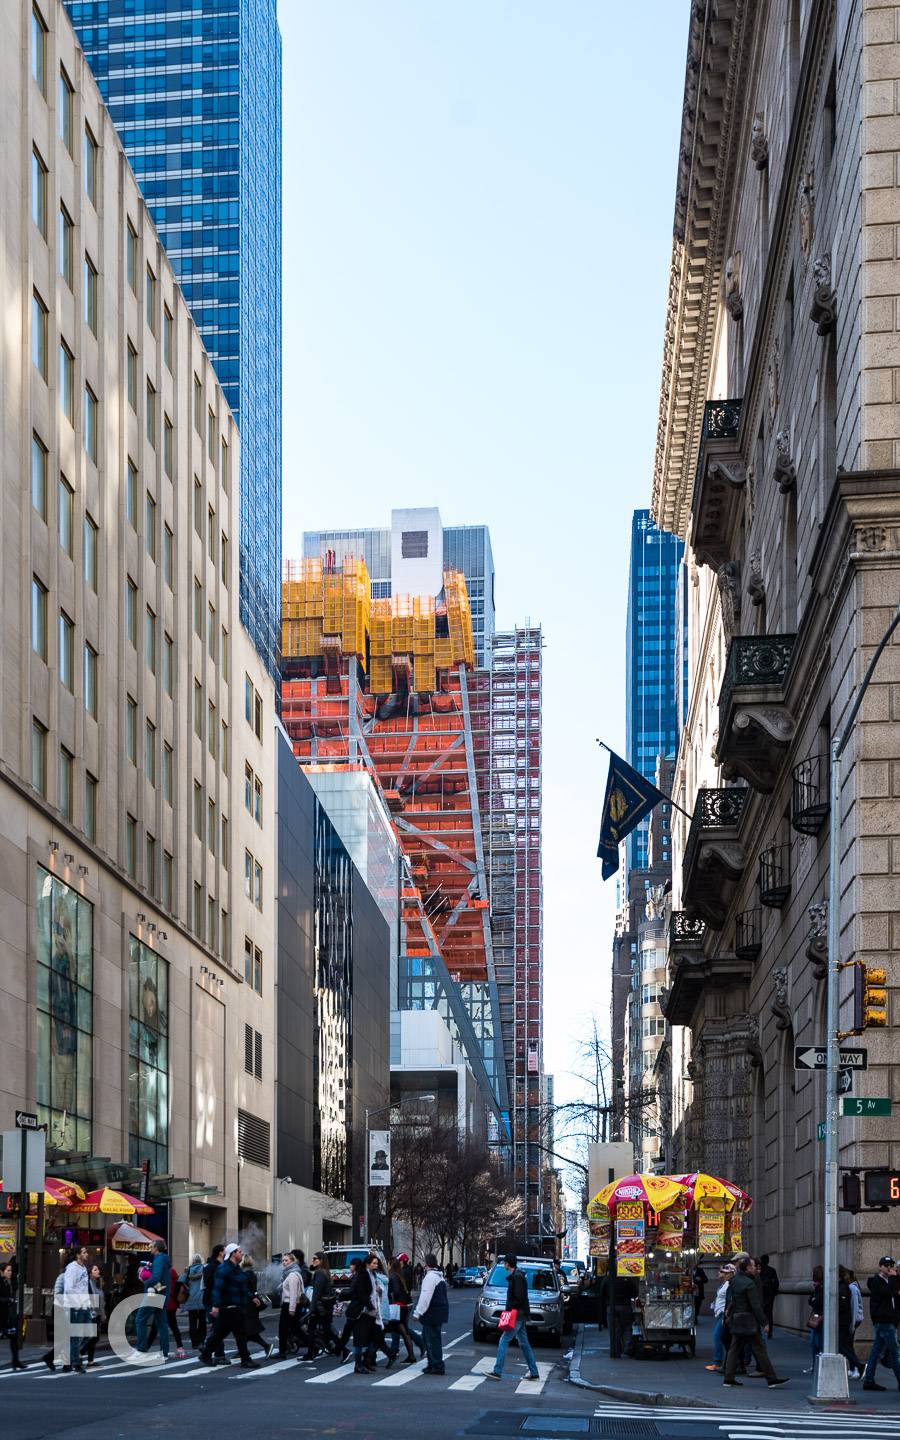 Looking west along East 54th Street.